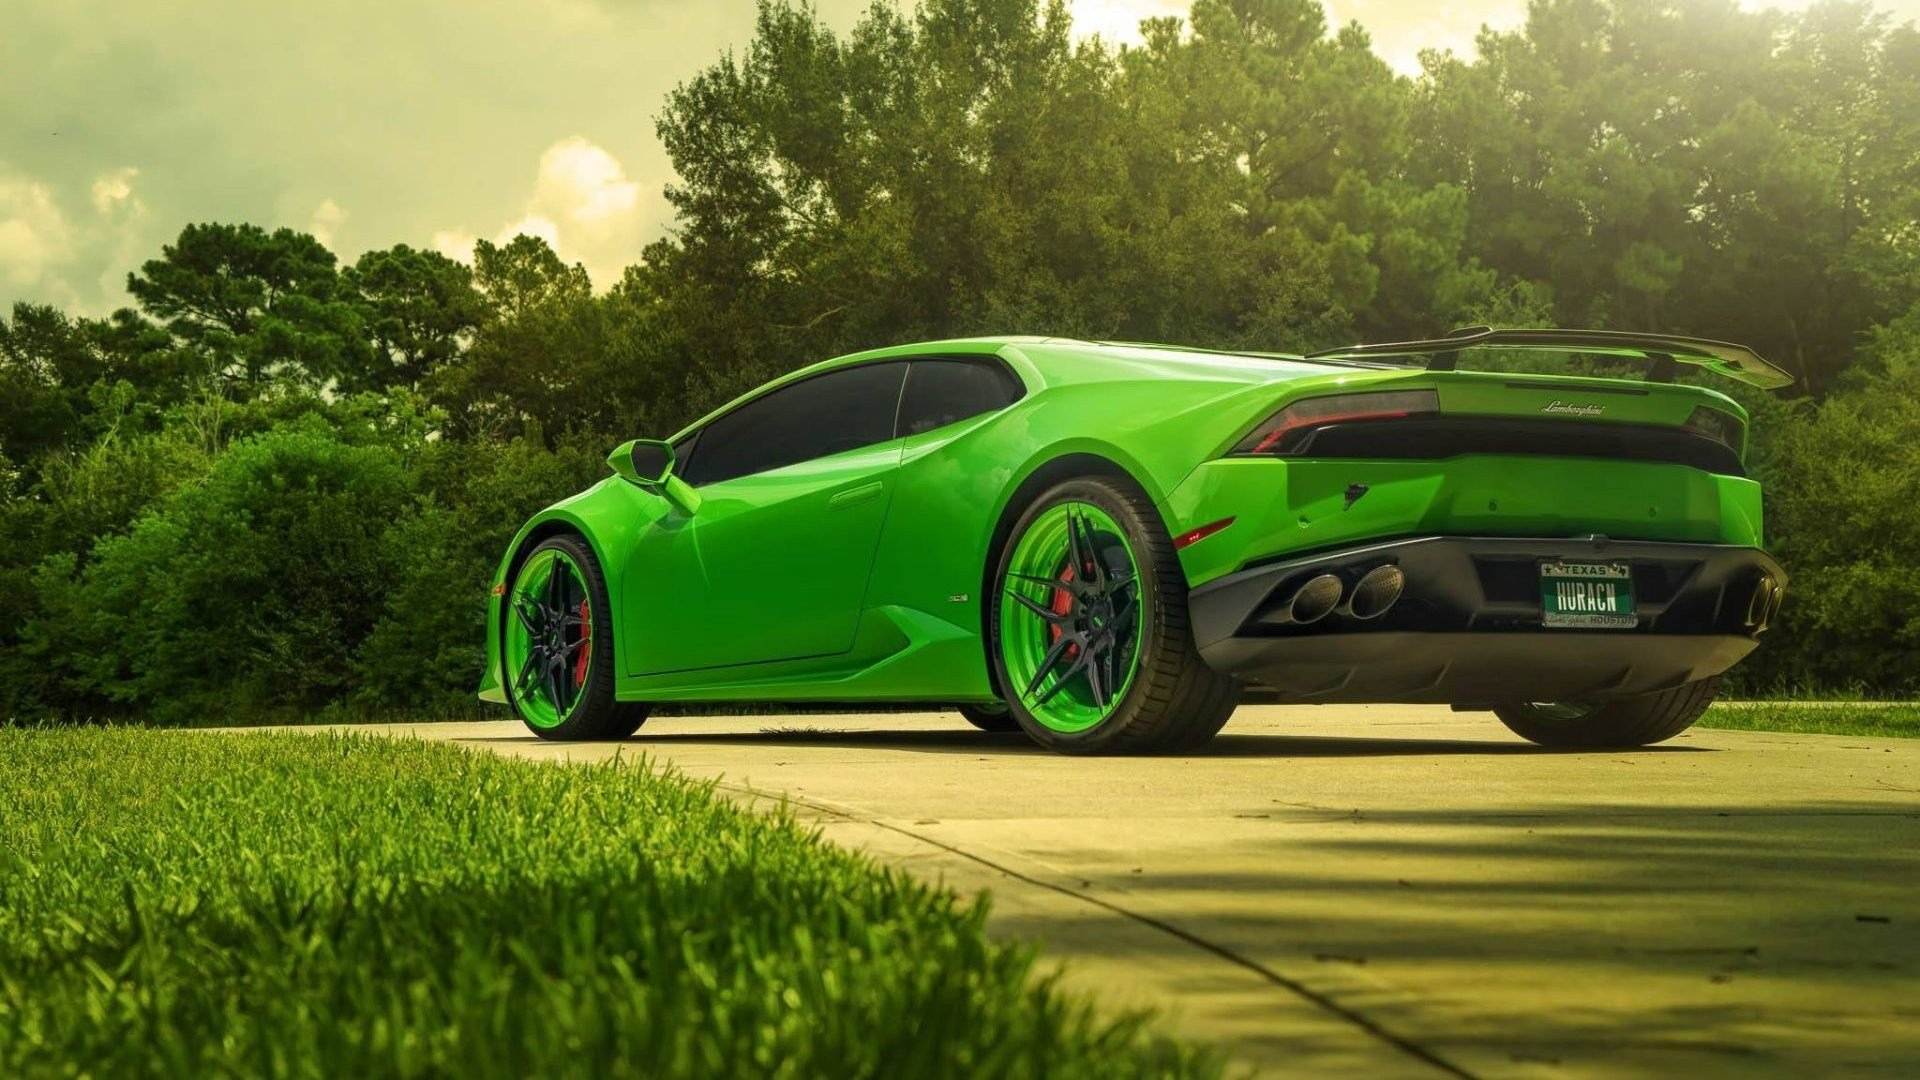 New Lamborghini Cars Wallpaper 78 Images On This Month